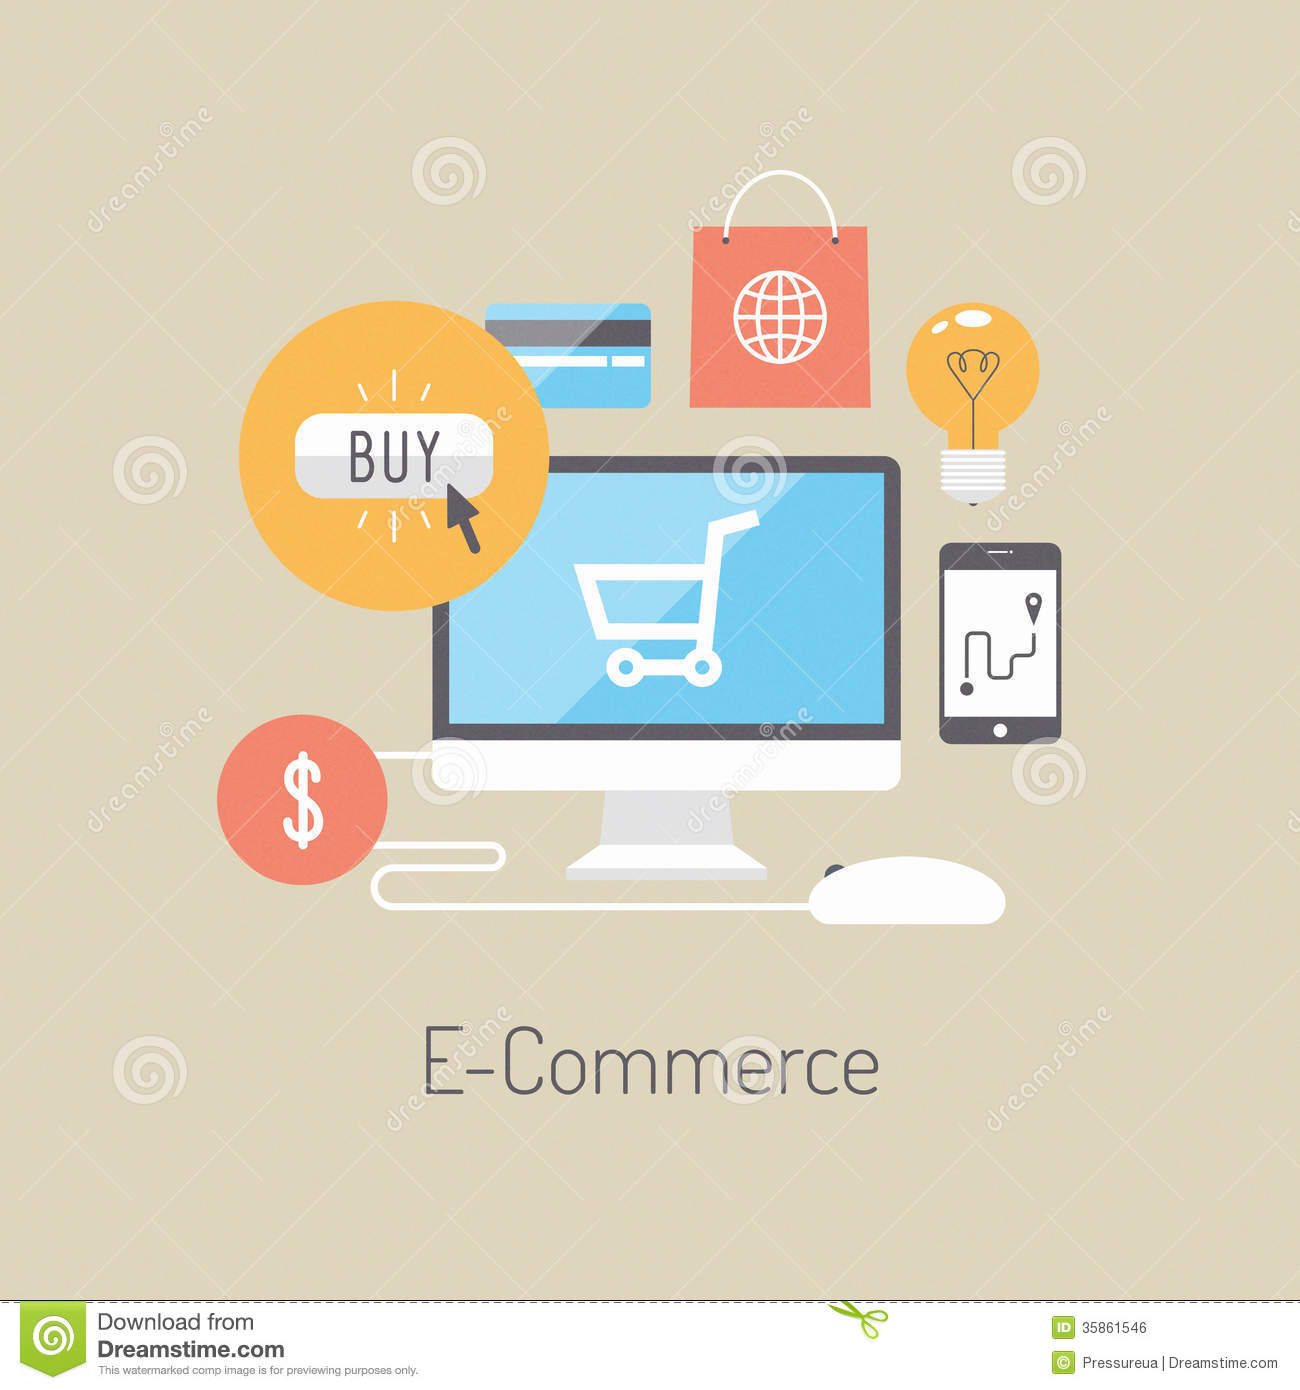 Online Decor Shopping E Commerce Flat Illustration Concept Royalty Free Stock